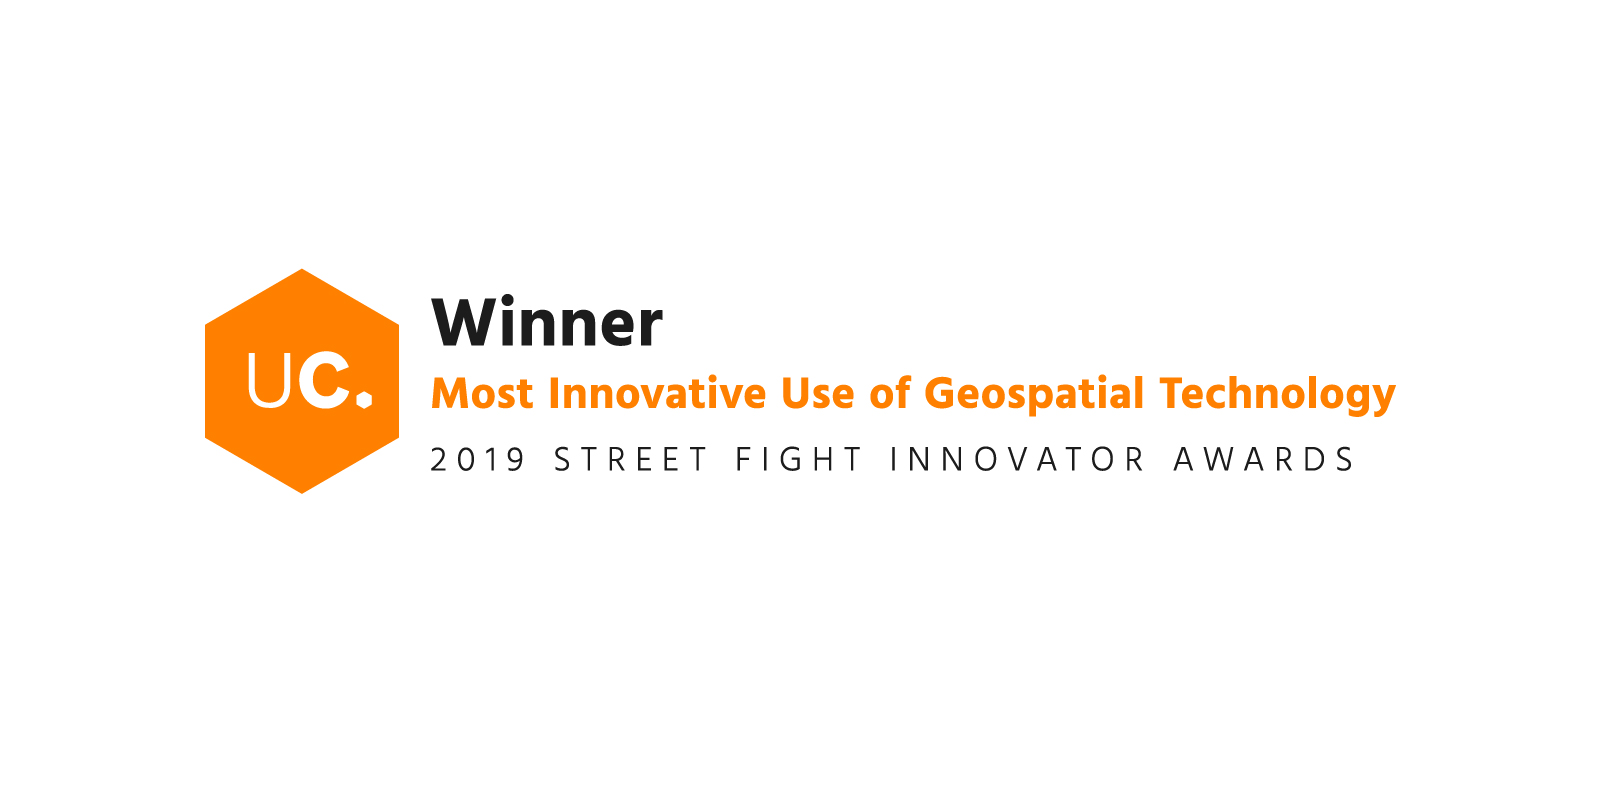 Unacast Wins Award for Most Innovative Use of Geospatial Technology